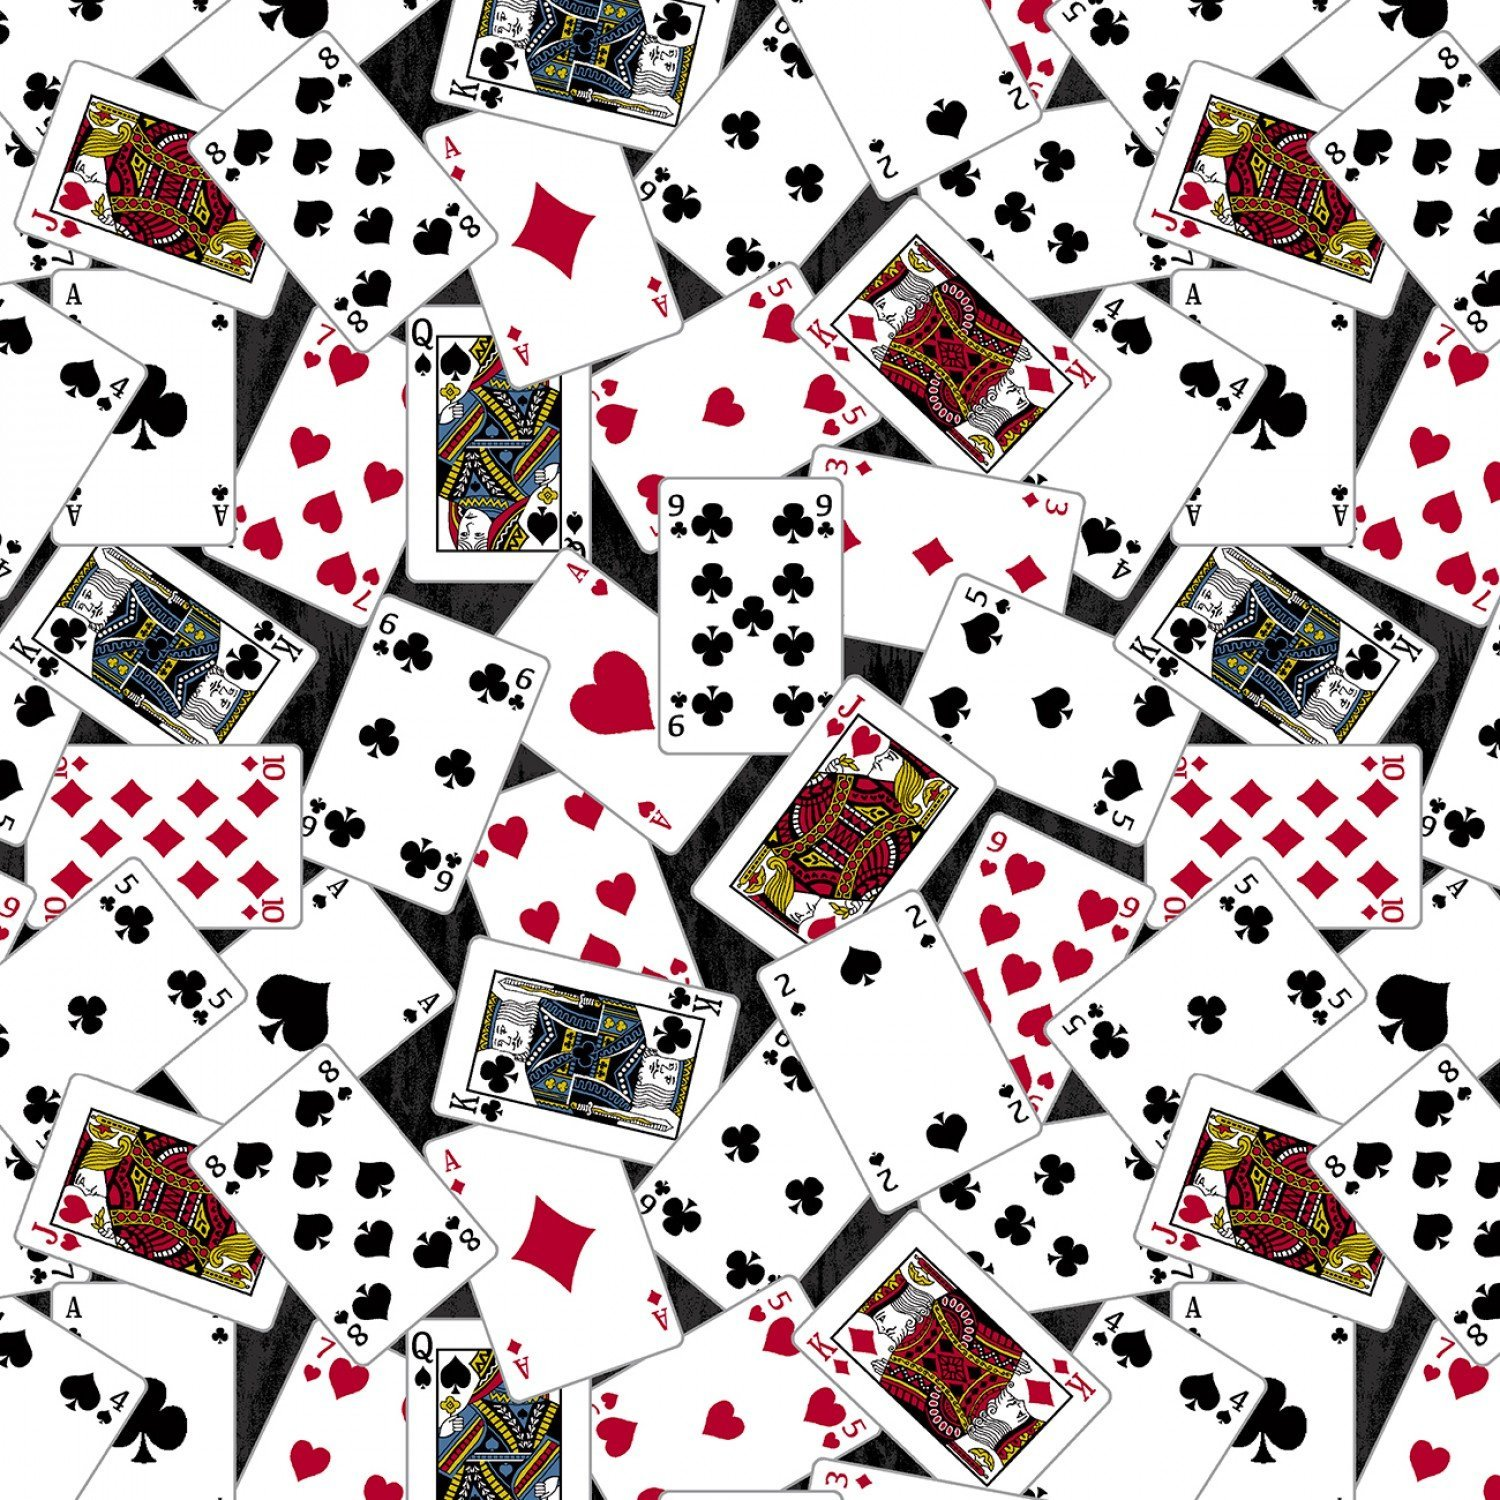 Man Cave 52411-2 Playing Cards Black